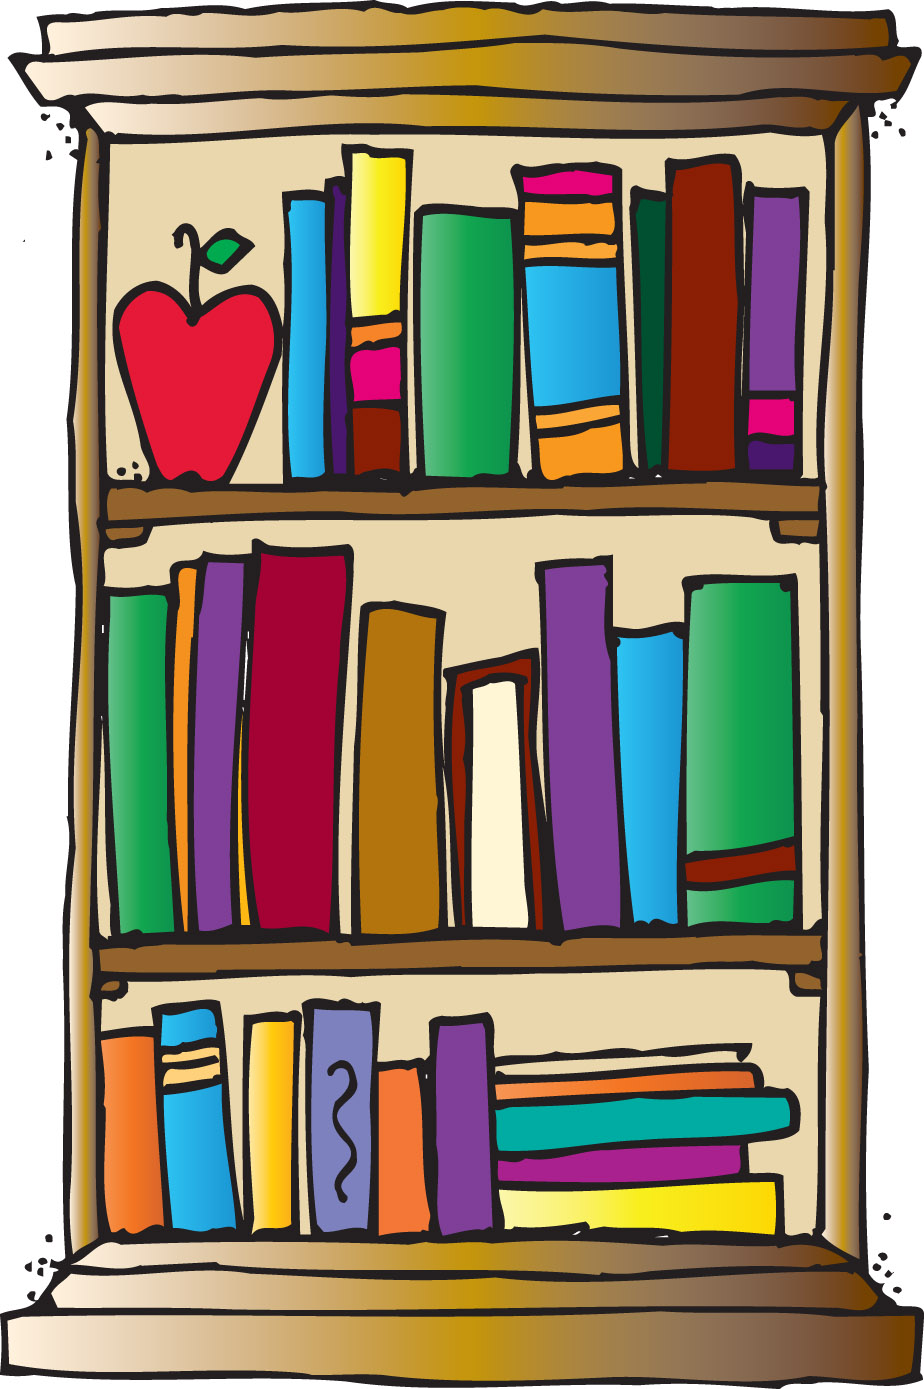 Bookshelf Clipart - Clipartion.com